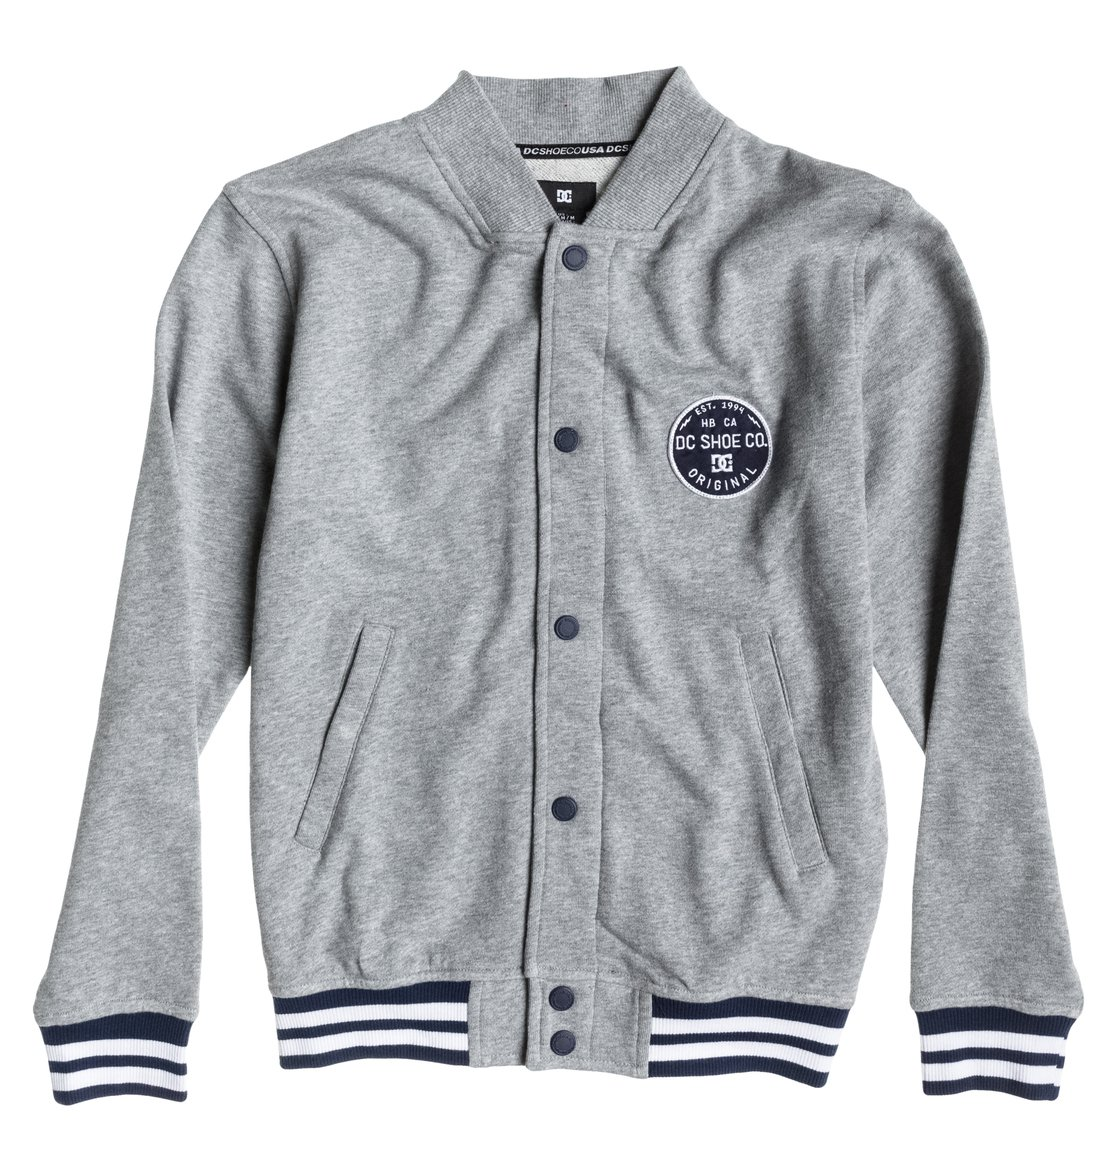 Cloverdale Boy - Dcshoes������ ��� ��������� � ����� Varsity Cloverdale BY �� DC Shoes � ������� �� ��������� ����� 2015. ��������������: ������������� �� ������ � ����������, �������������� ������ DC, ����������� ������� ������ � ������� � ������.<br>